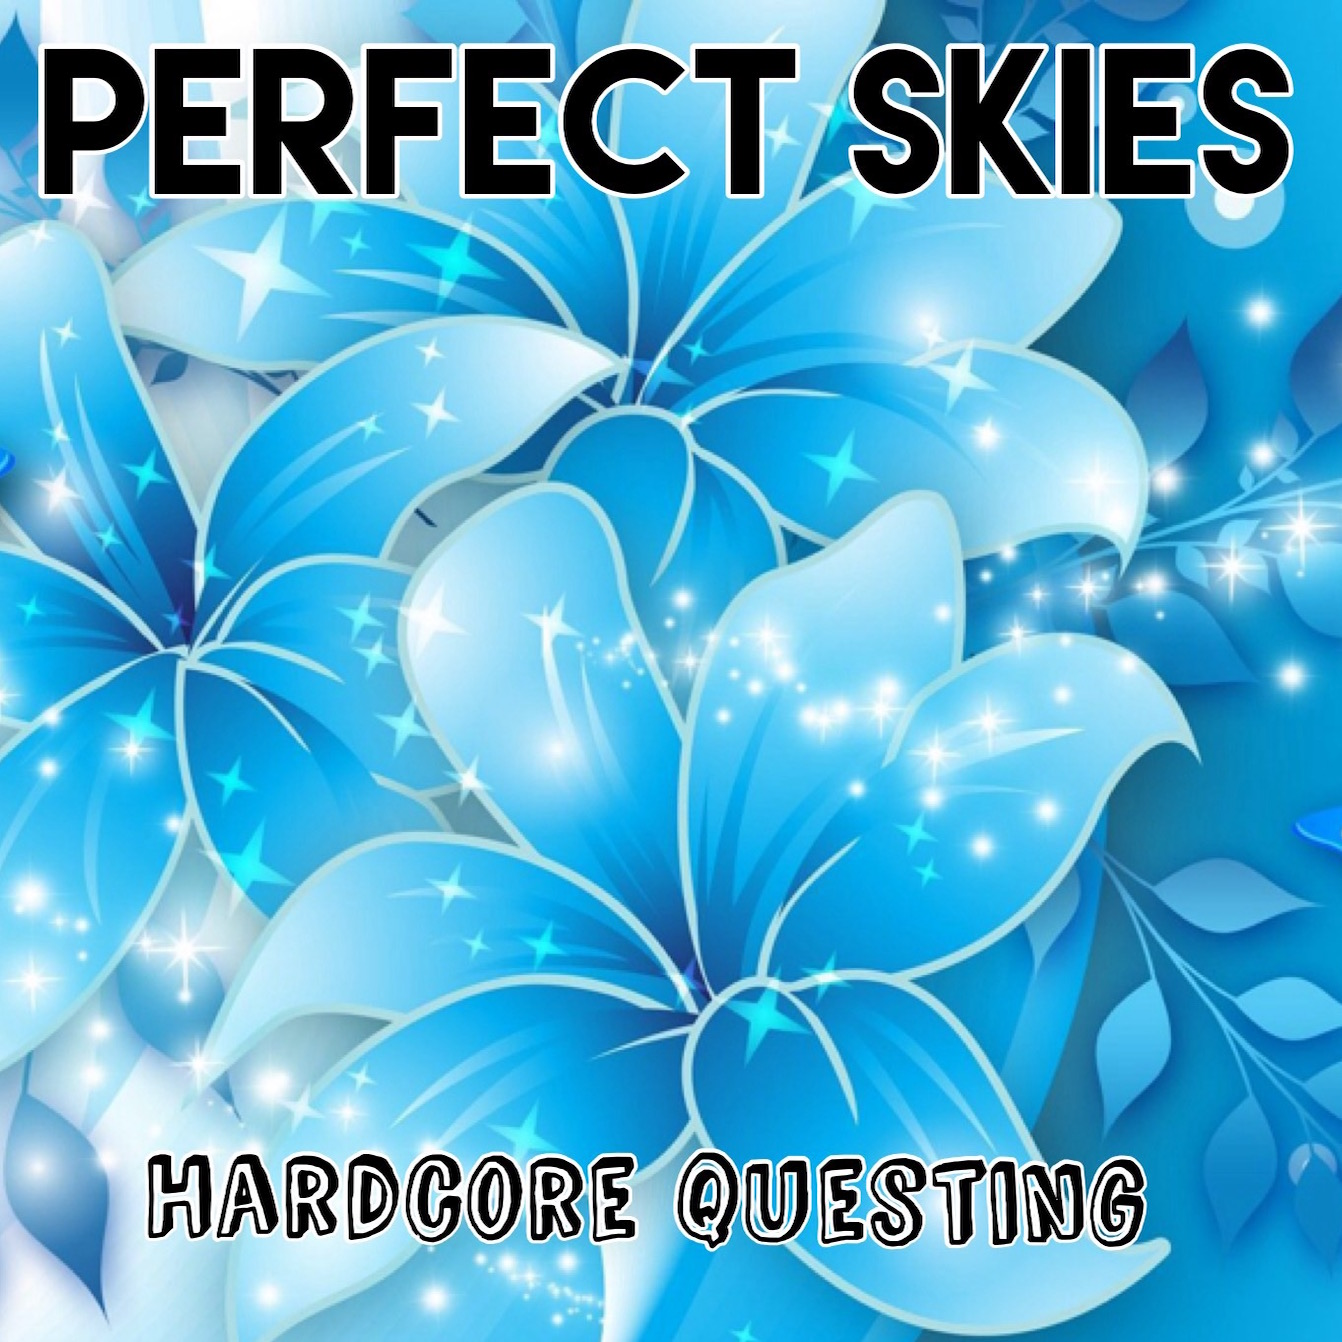 PS-1 10 2-b4a - Files - Perfect Skies - Modpacks - Projects